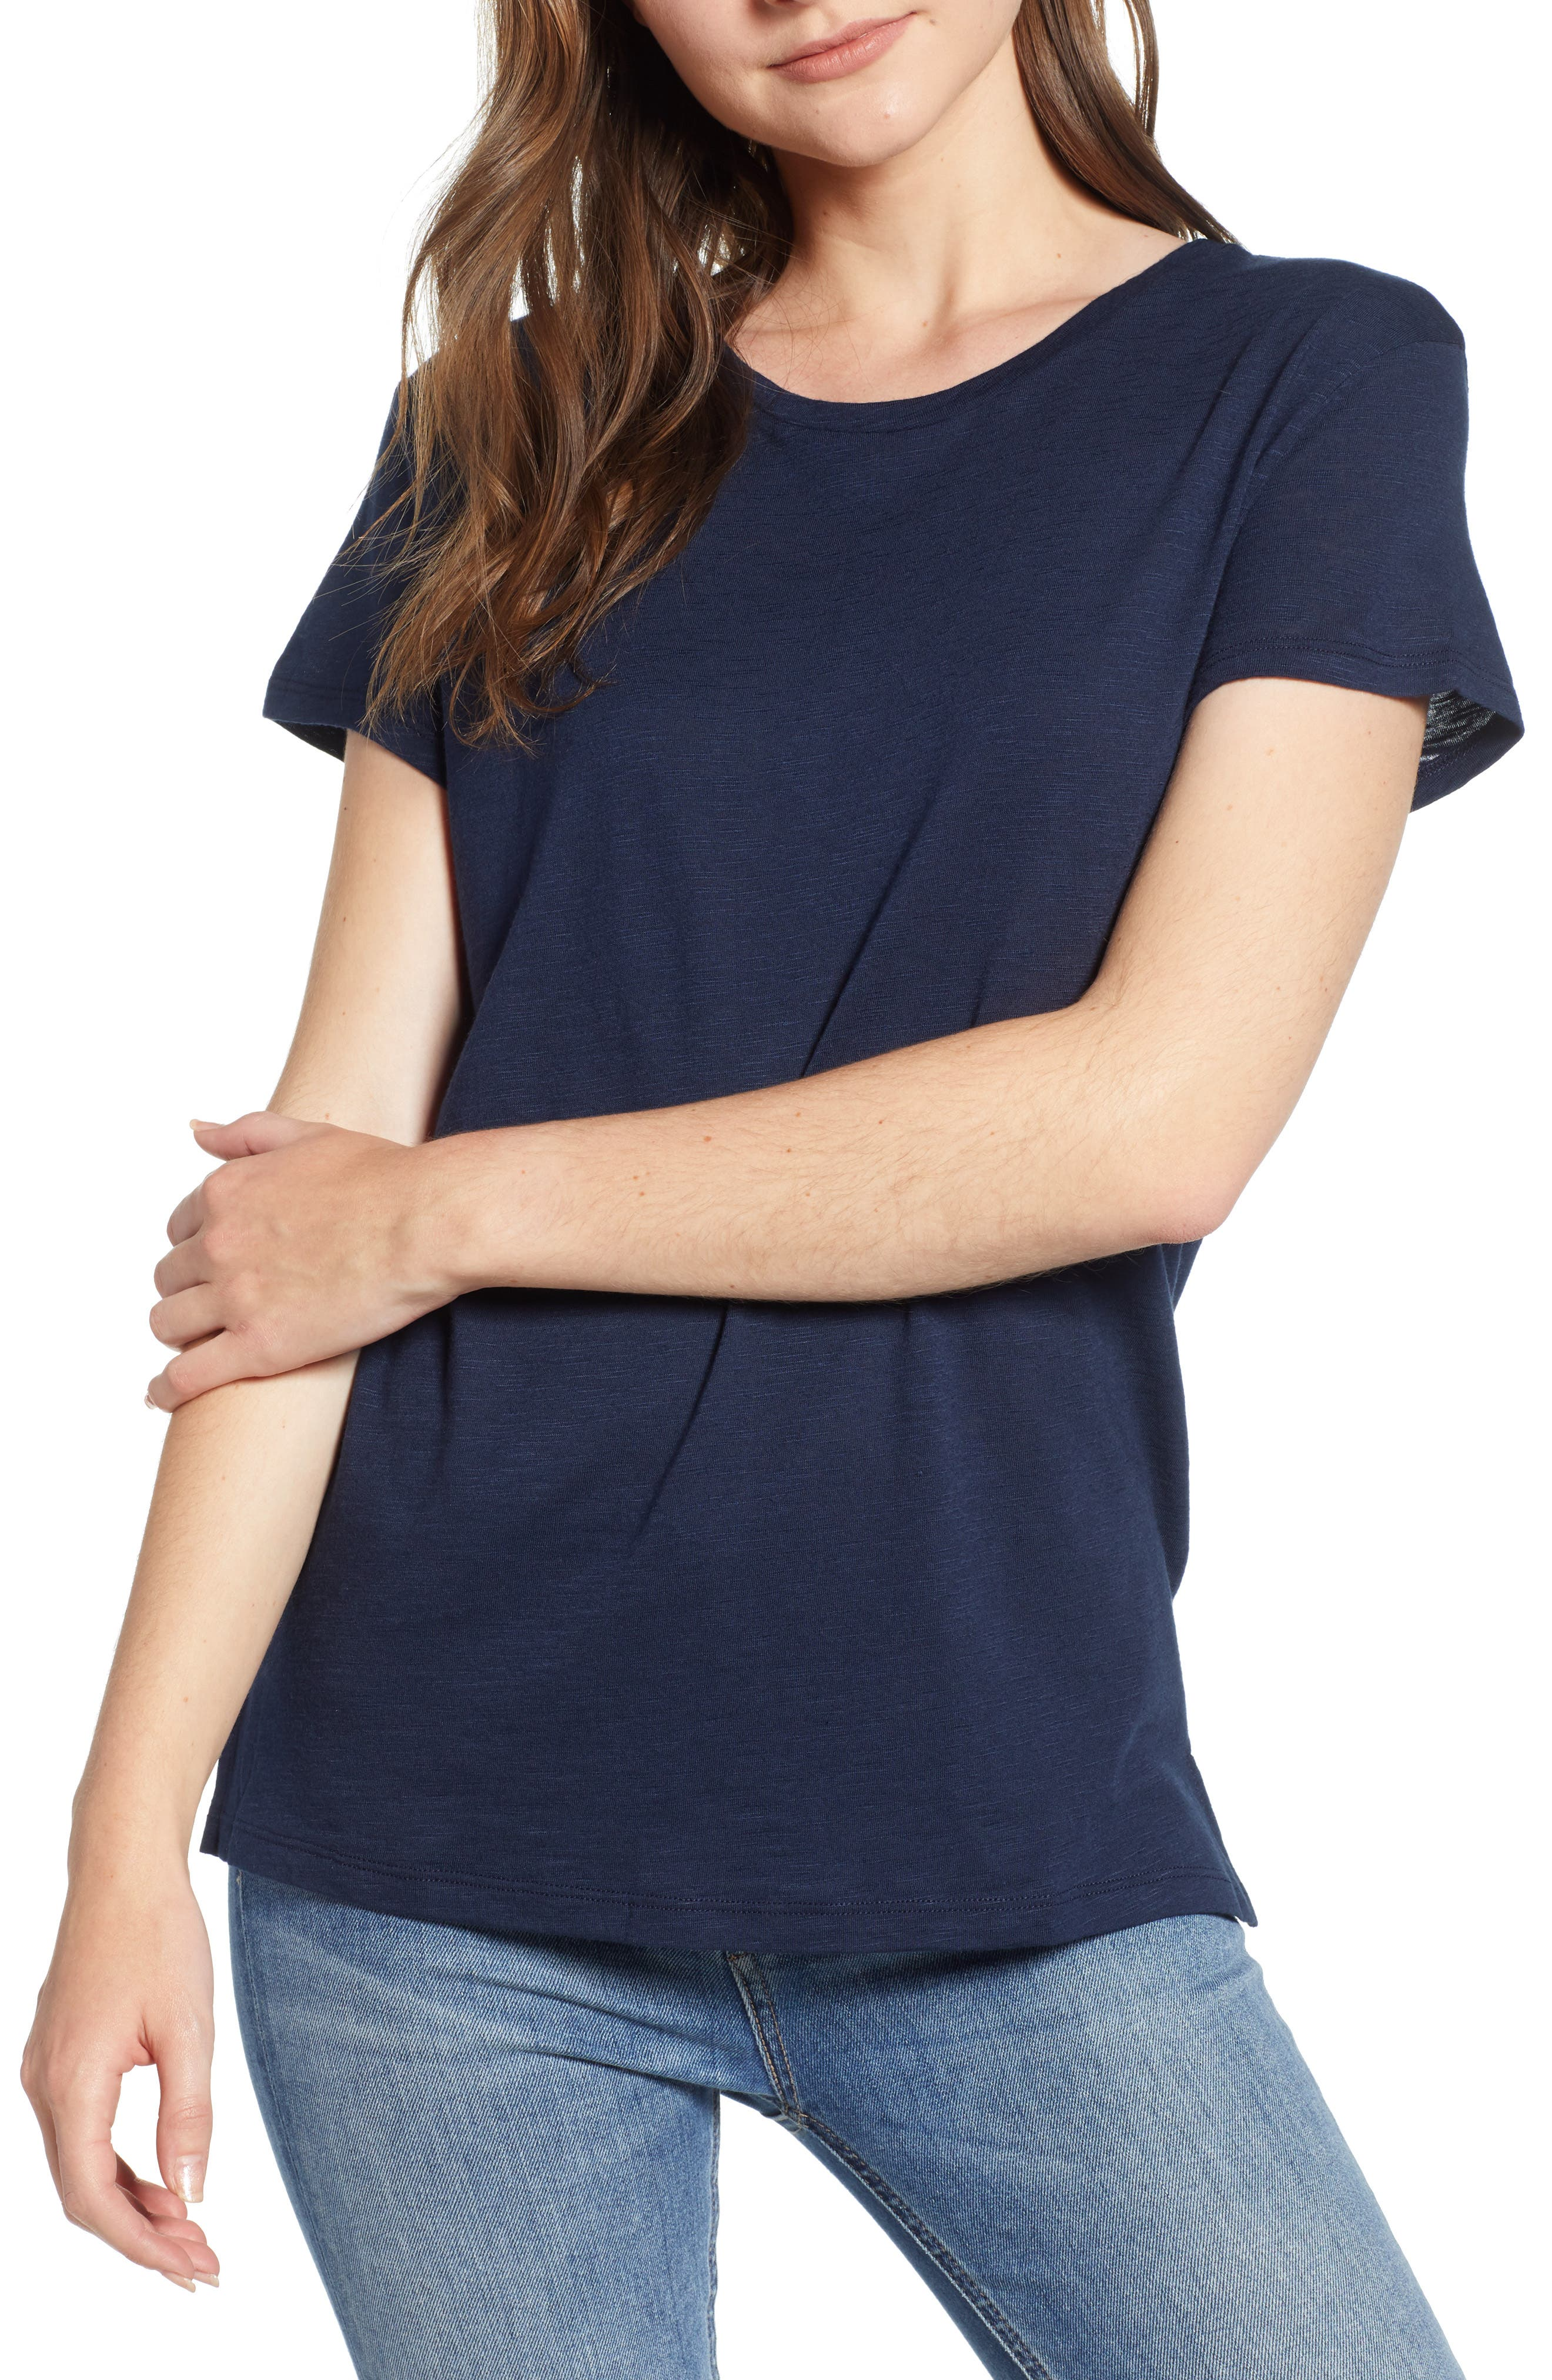 AMOUR VERT, Leif Slub Tee, Main thumbnail 1, color, DARK NAVY